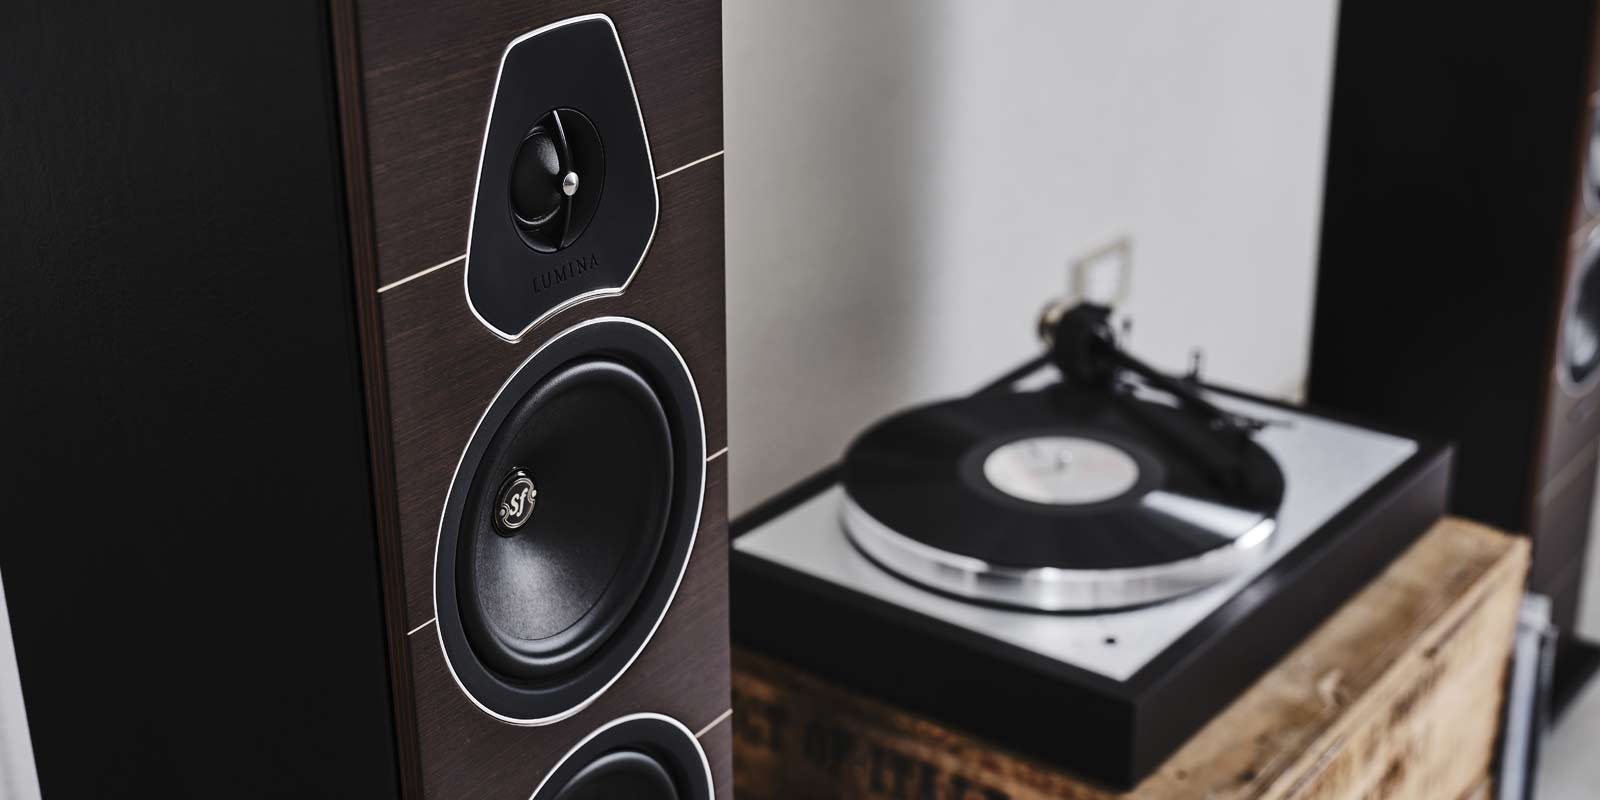 Sonus-faber-Lumina-III-floorstanding-speakers